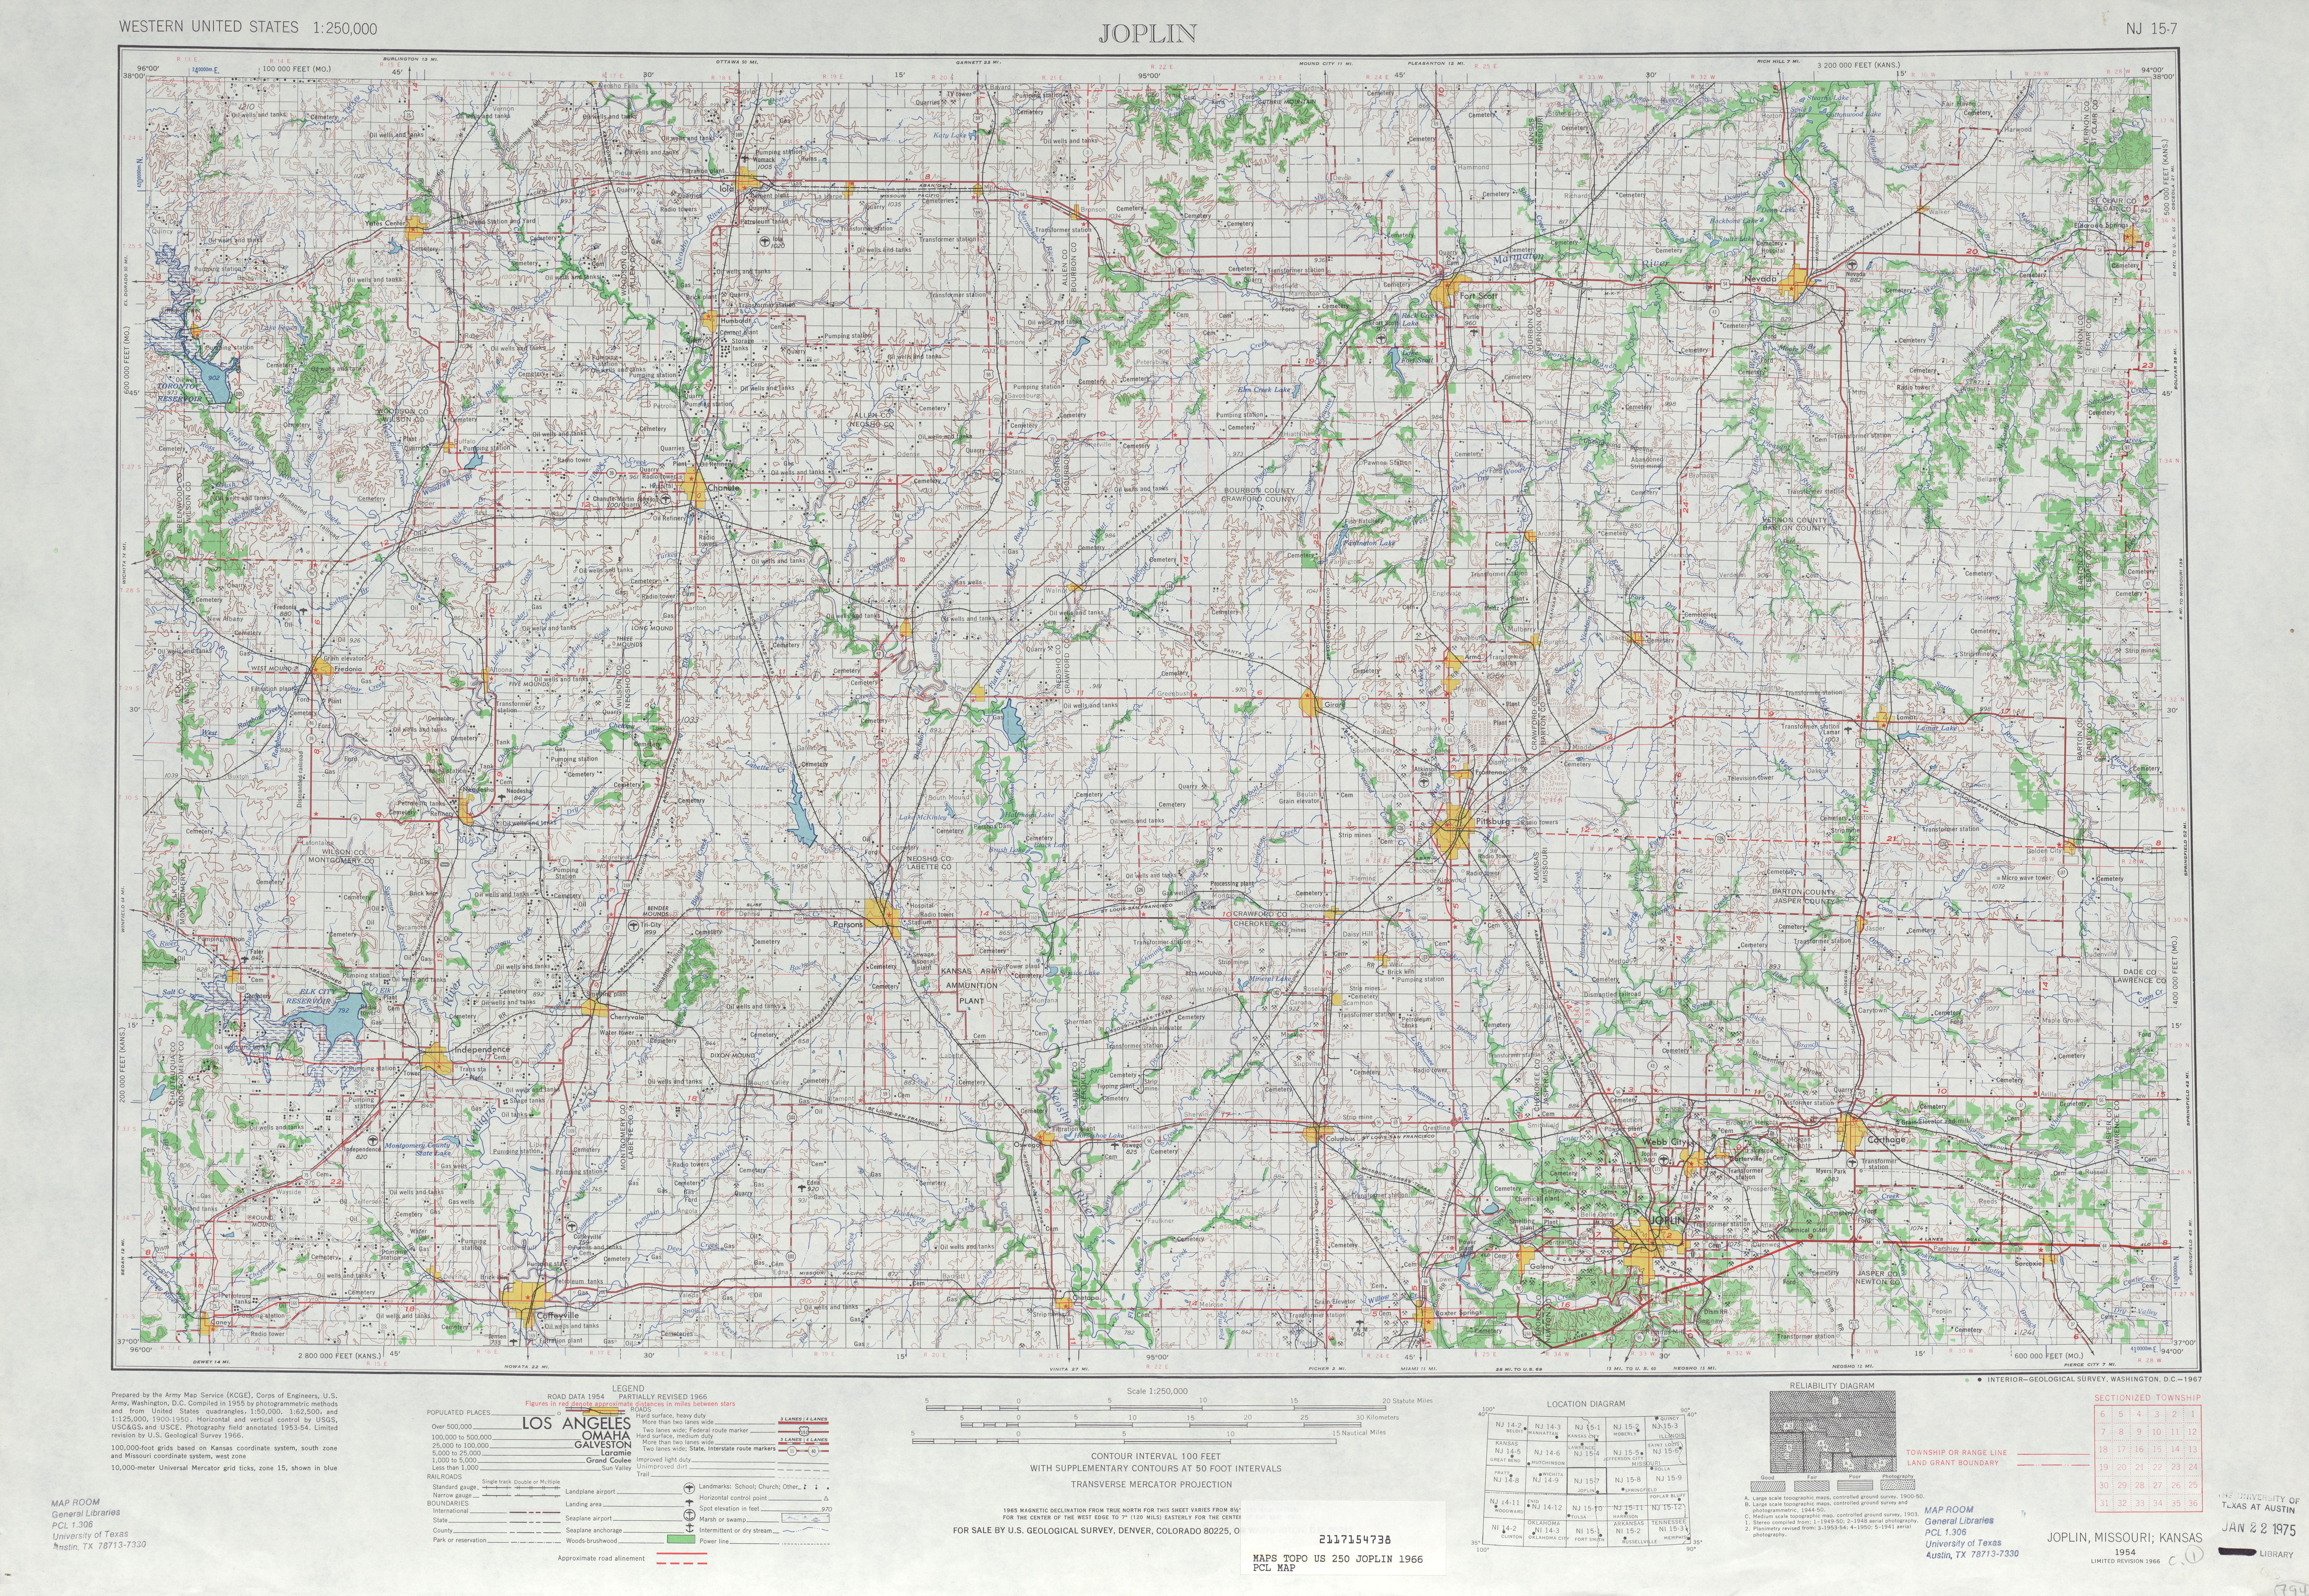 Joplin Topographic Map Sheet, United States 1966